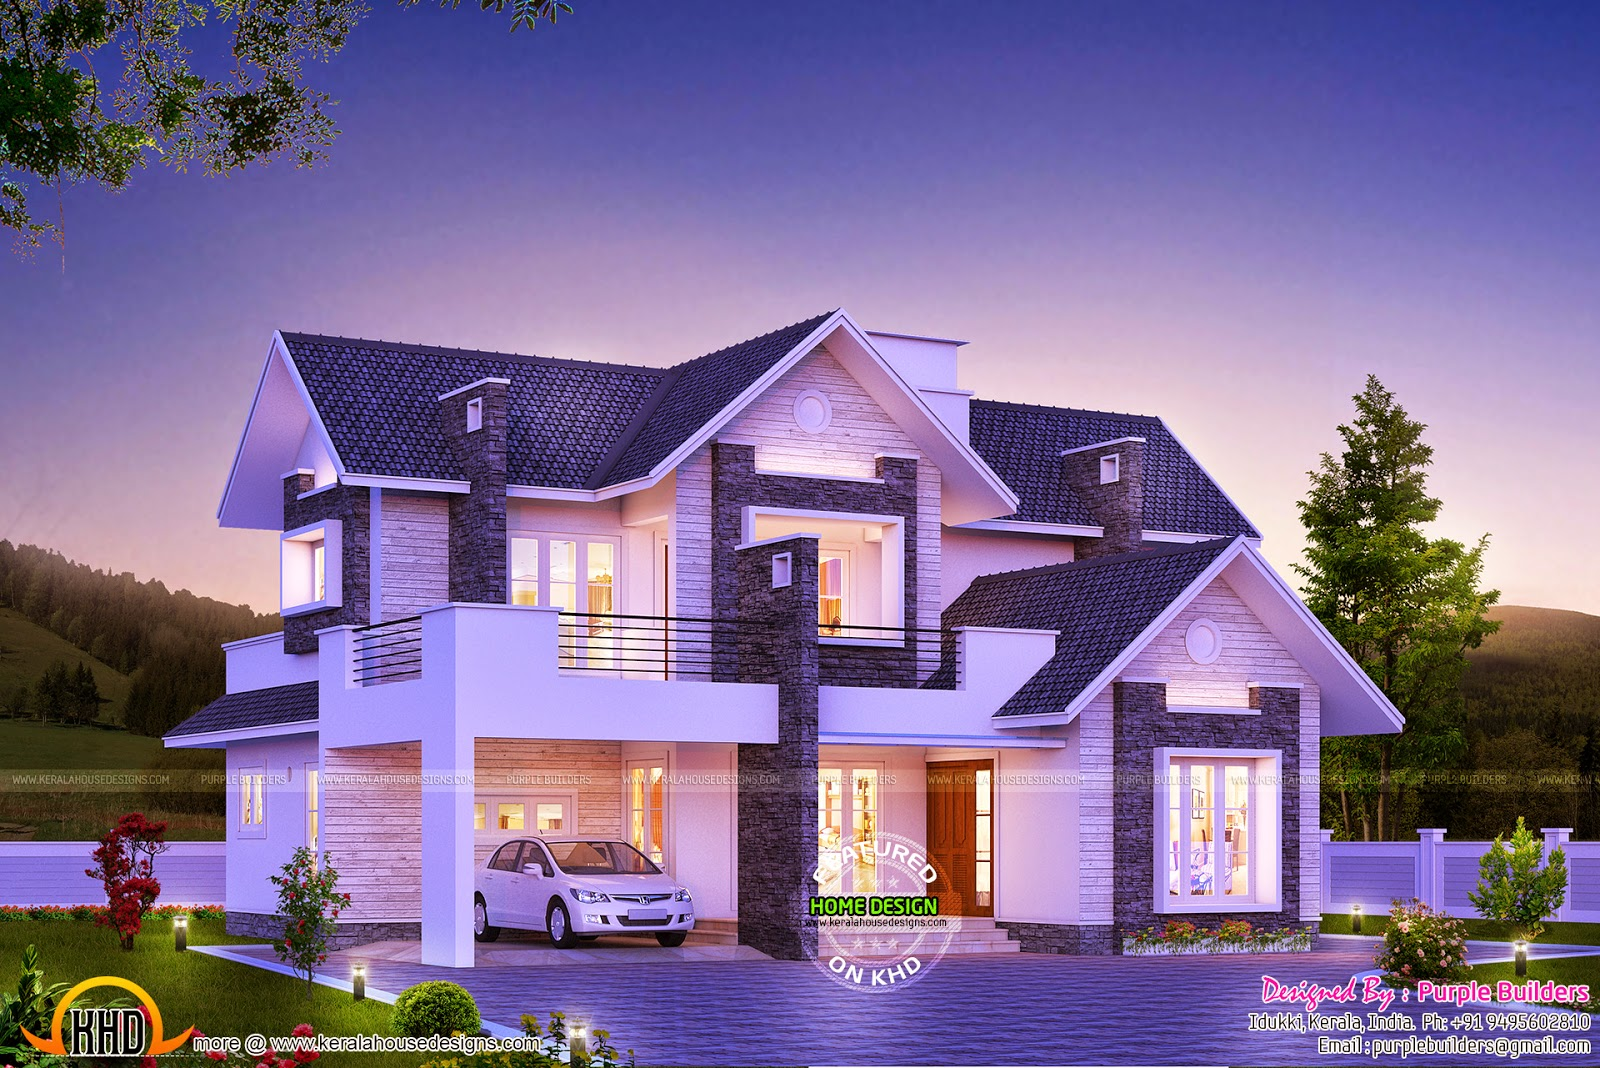 Super dream home kerala home design and floor plans Dream house builder